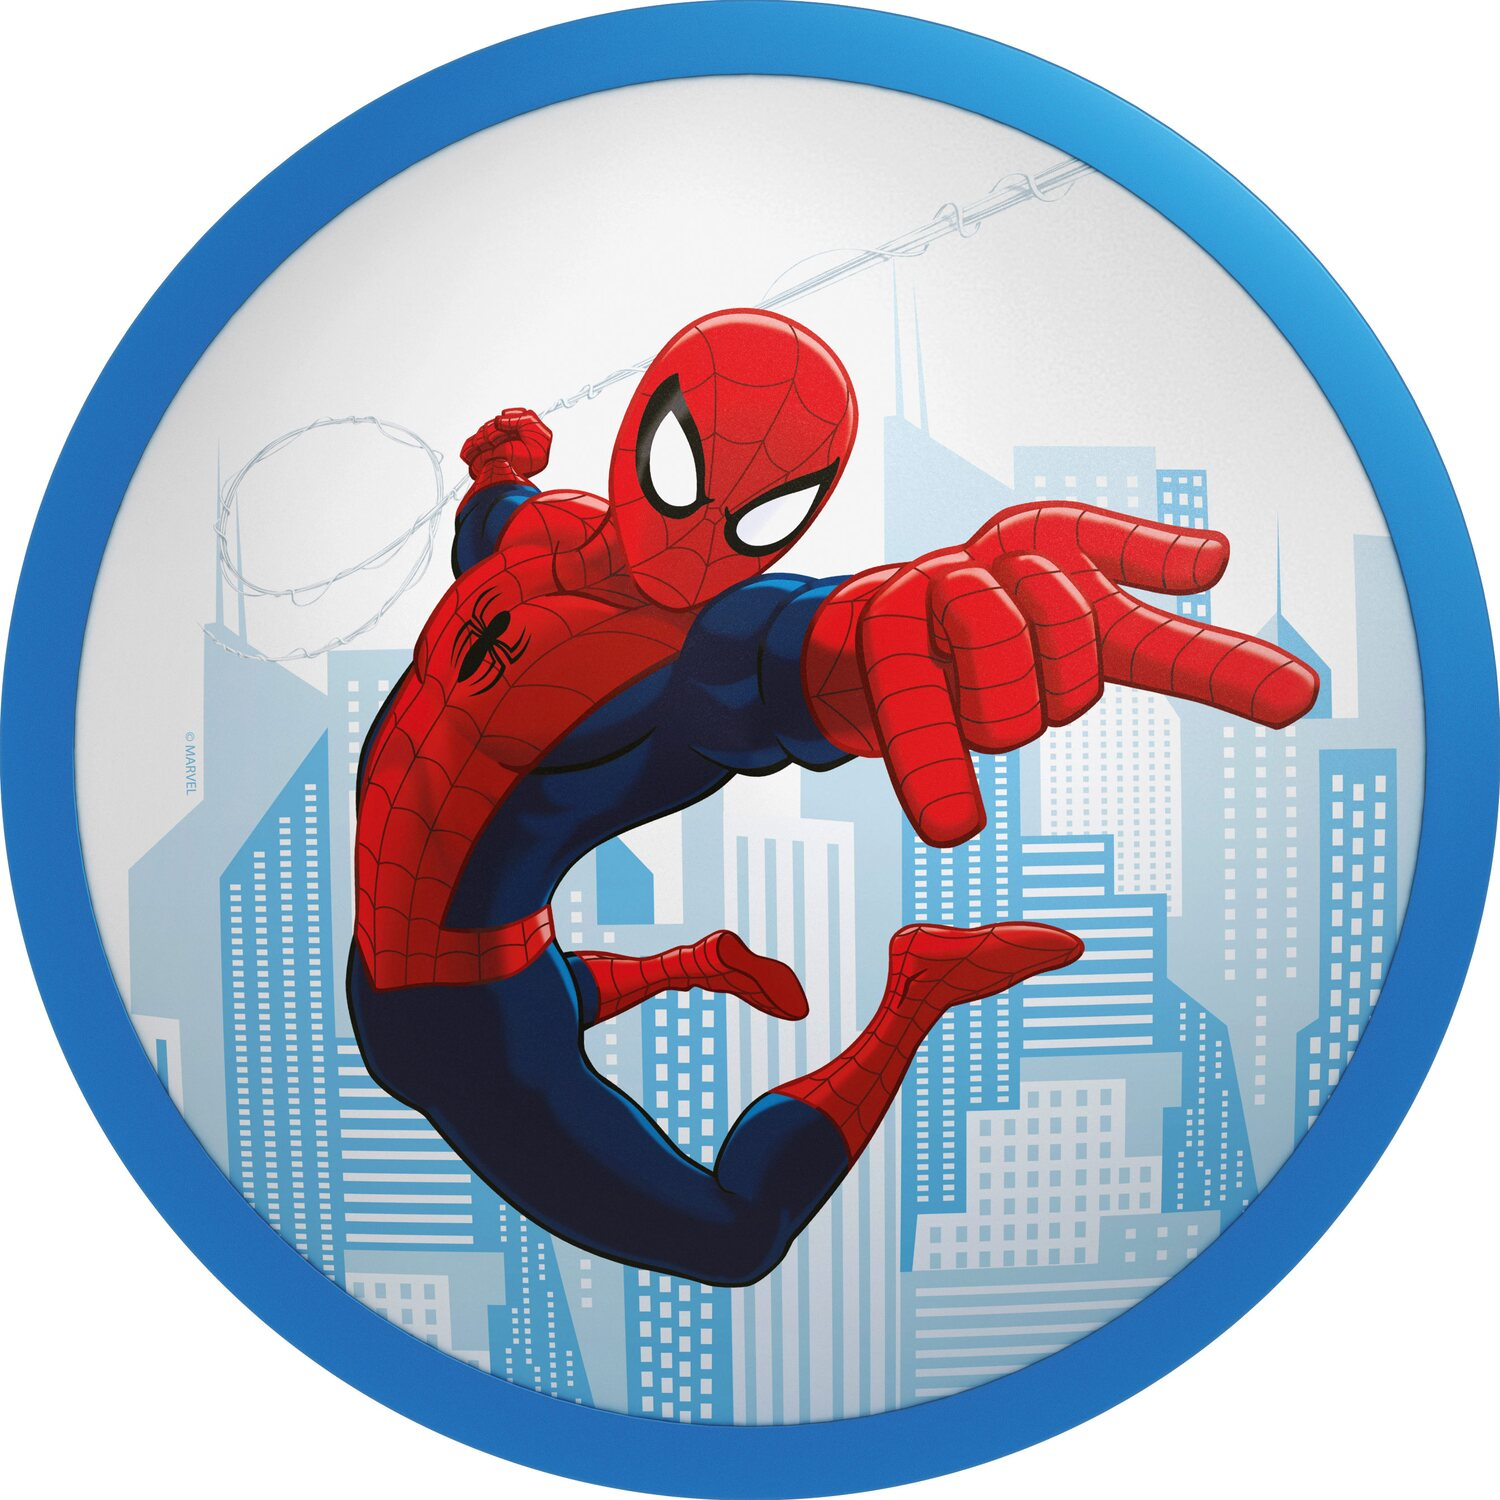 Philips Lampada Da Soffitto Led Disney Spiderman Acquista